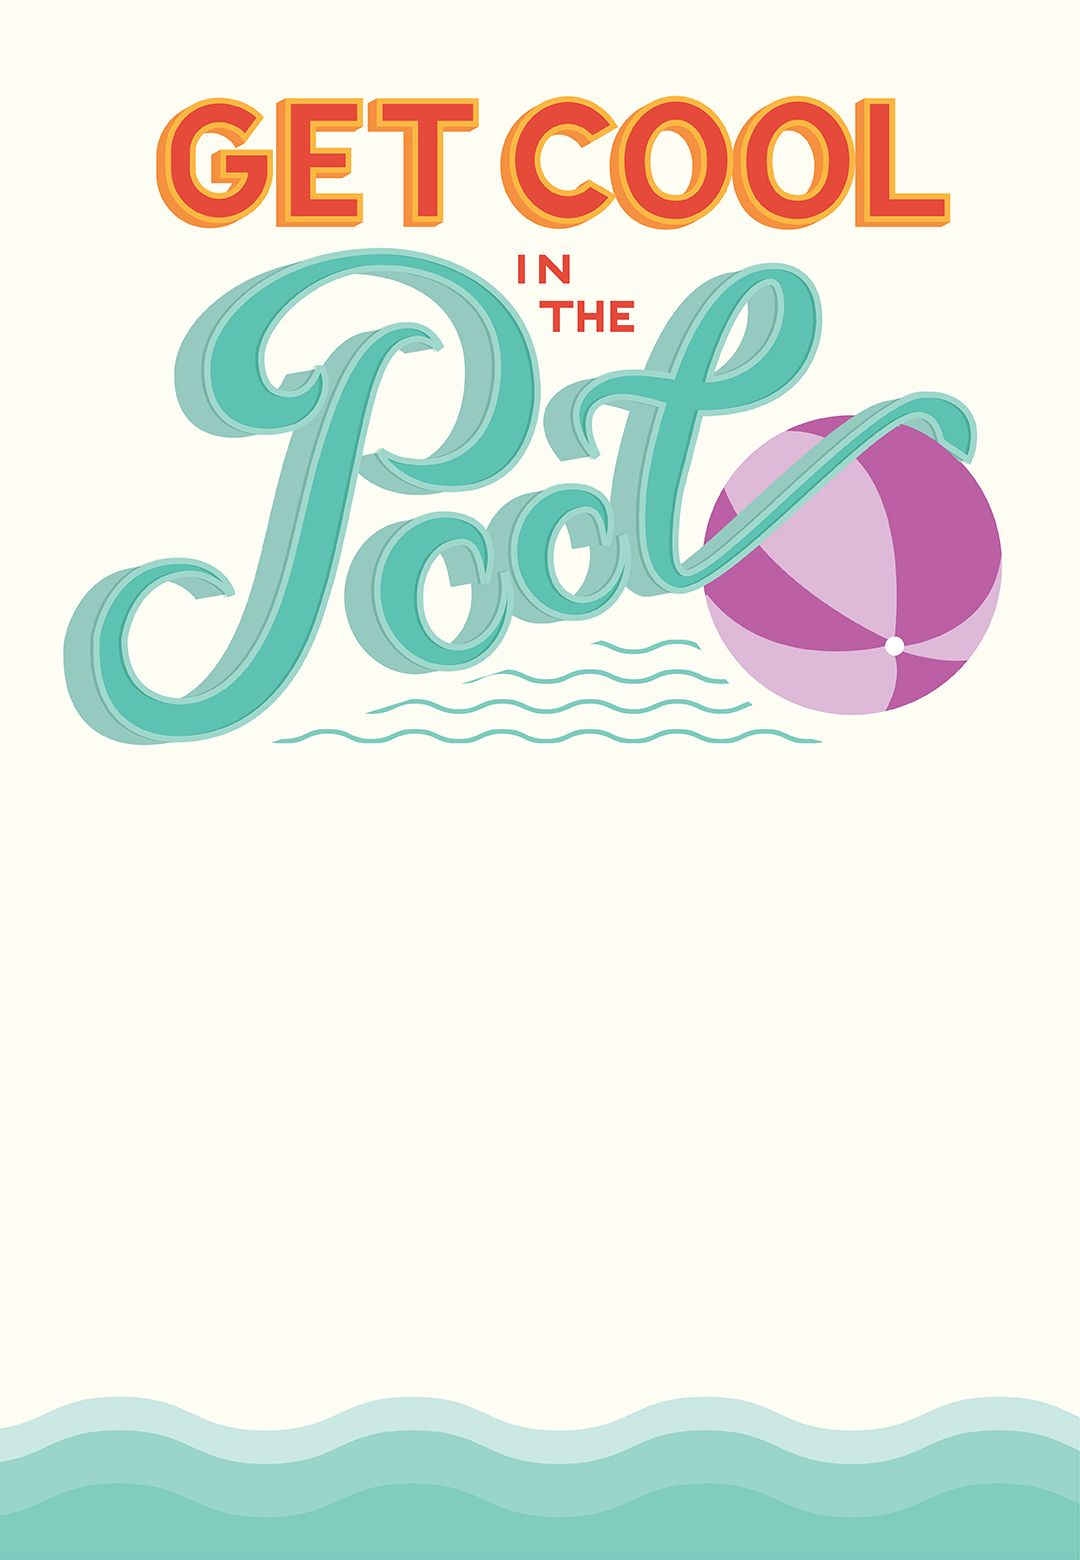 Pool Party - Free Printable Party Invitation Template | Greetings - Pool Party Flyers Free Printable